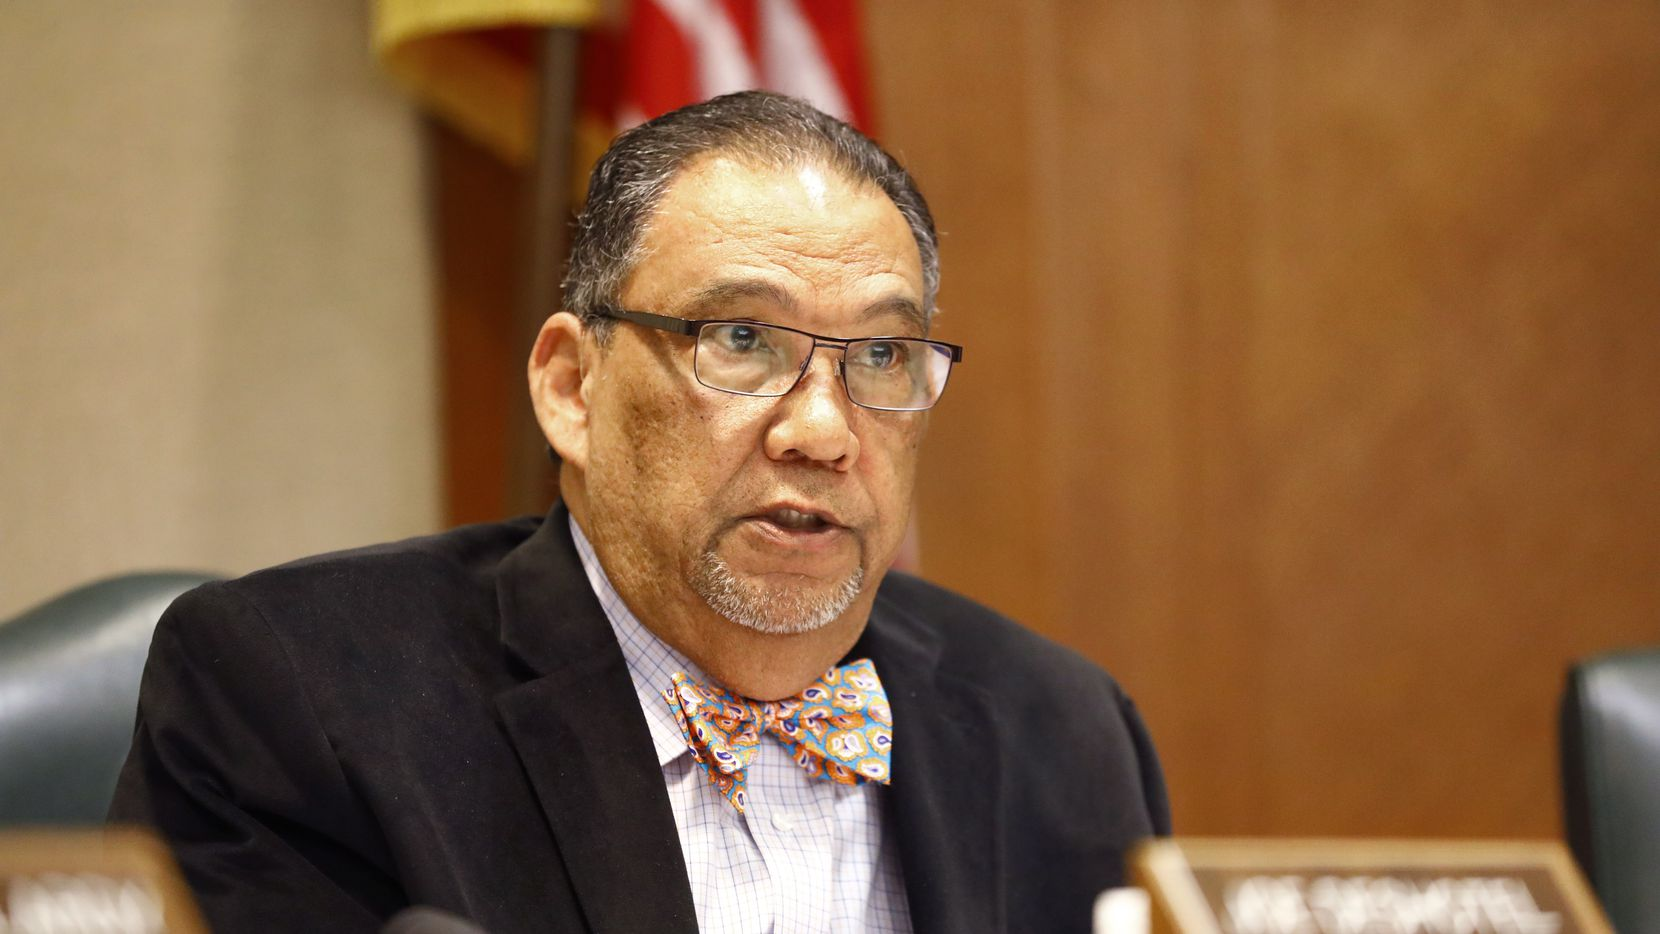 Texas Representative Joe Deshotelof District 22 (D-Beaumont) is pictured during a House Human Services Committee meeting House Bill 2453 in the Texas State Capitol extension in Austin, Tuesday, April 2, 2019. The Bill represented by Texas Representative Sarah Davis of District 134 (R-West University Place) relates to the operation and administration of Medicaid, including the Medicaid managed care program. (Tom Fox/The Dallas Morning News)